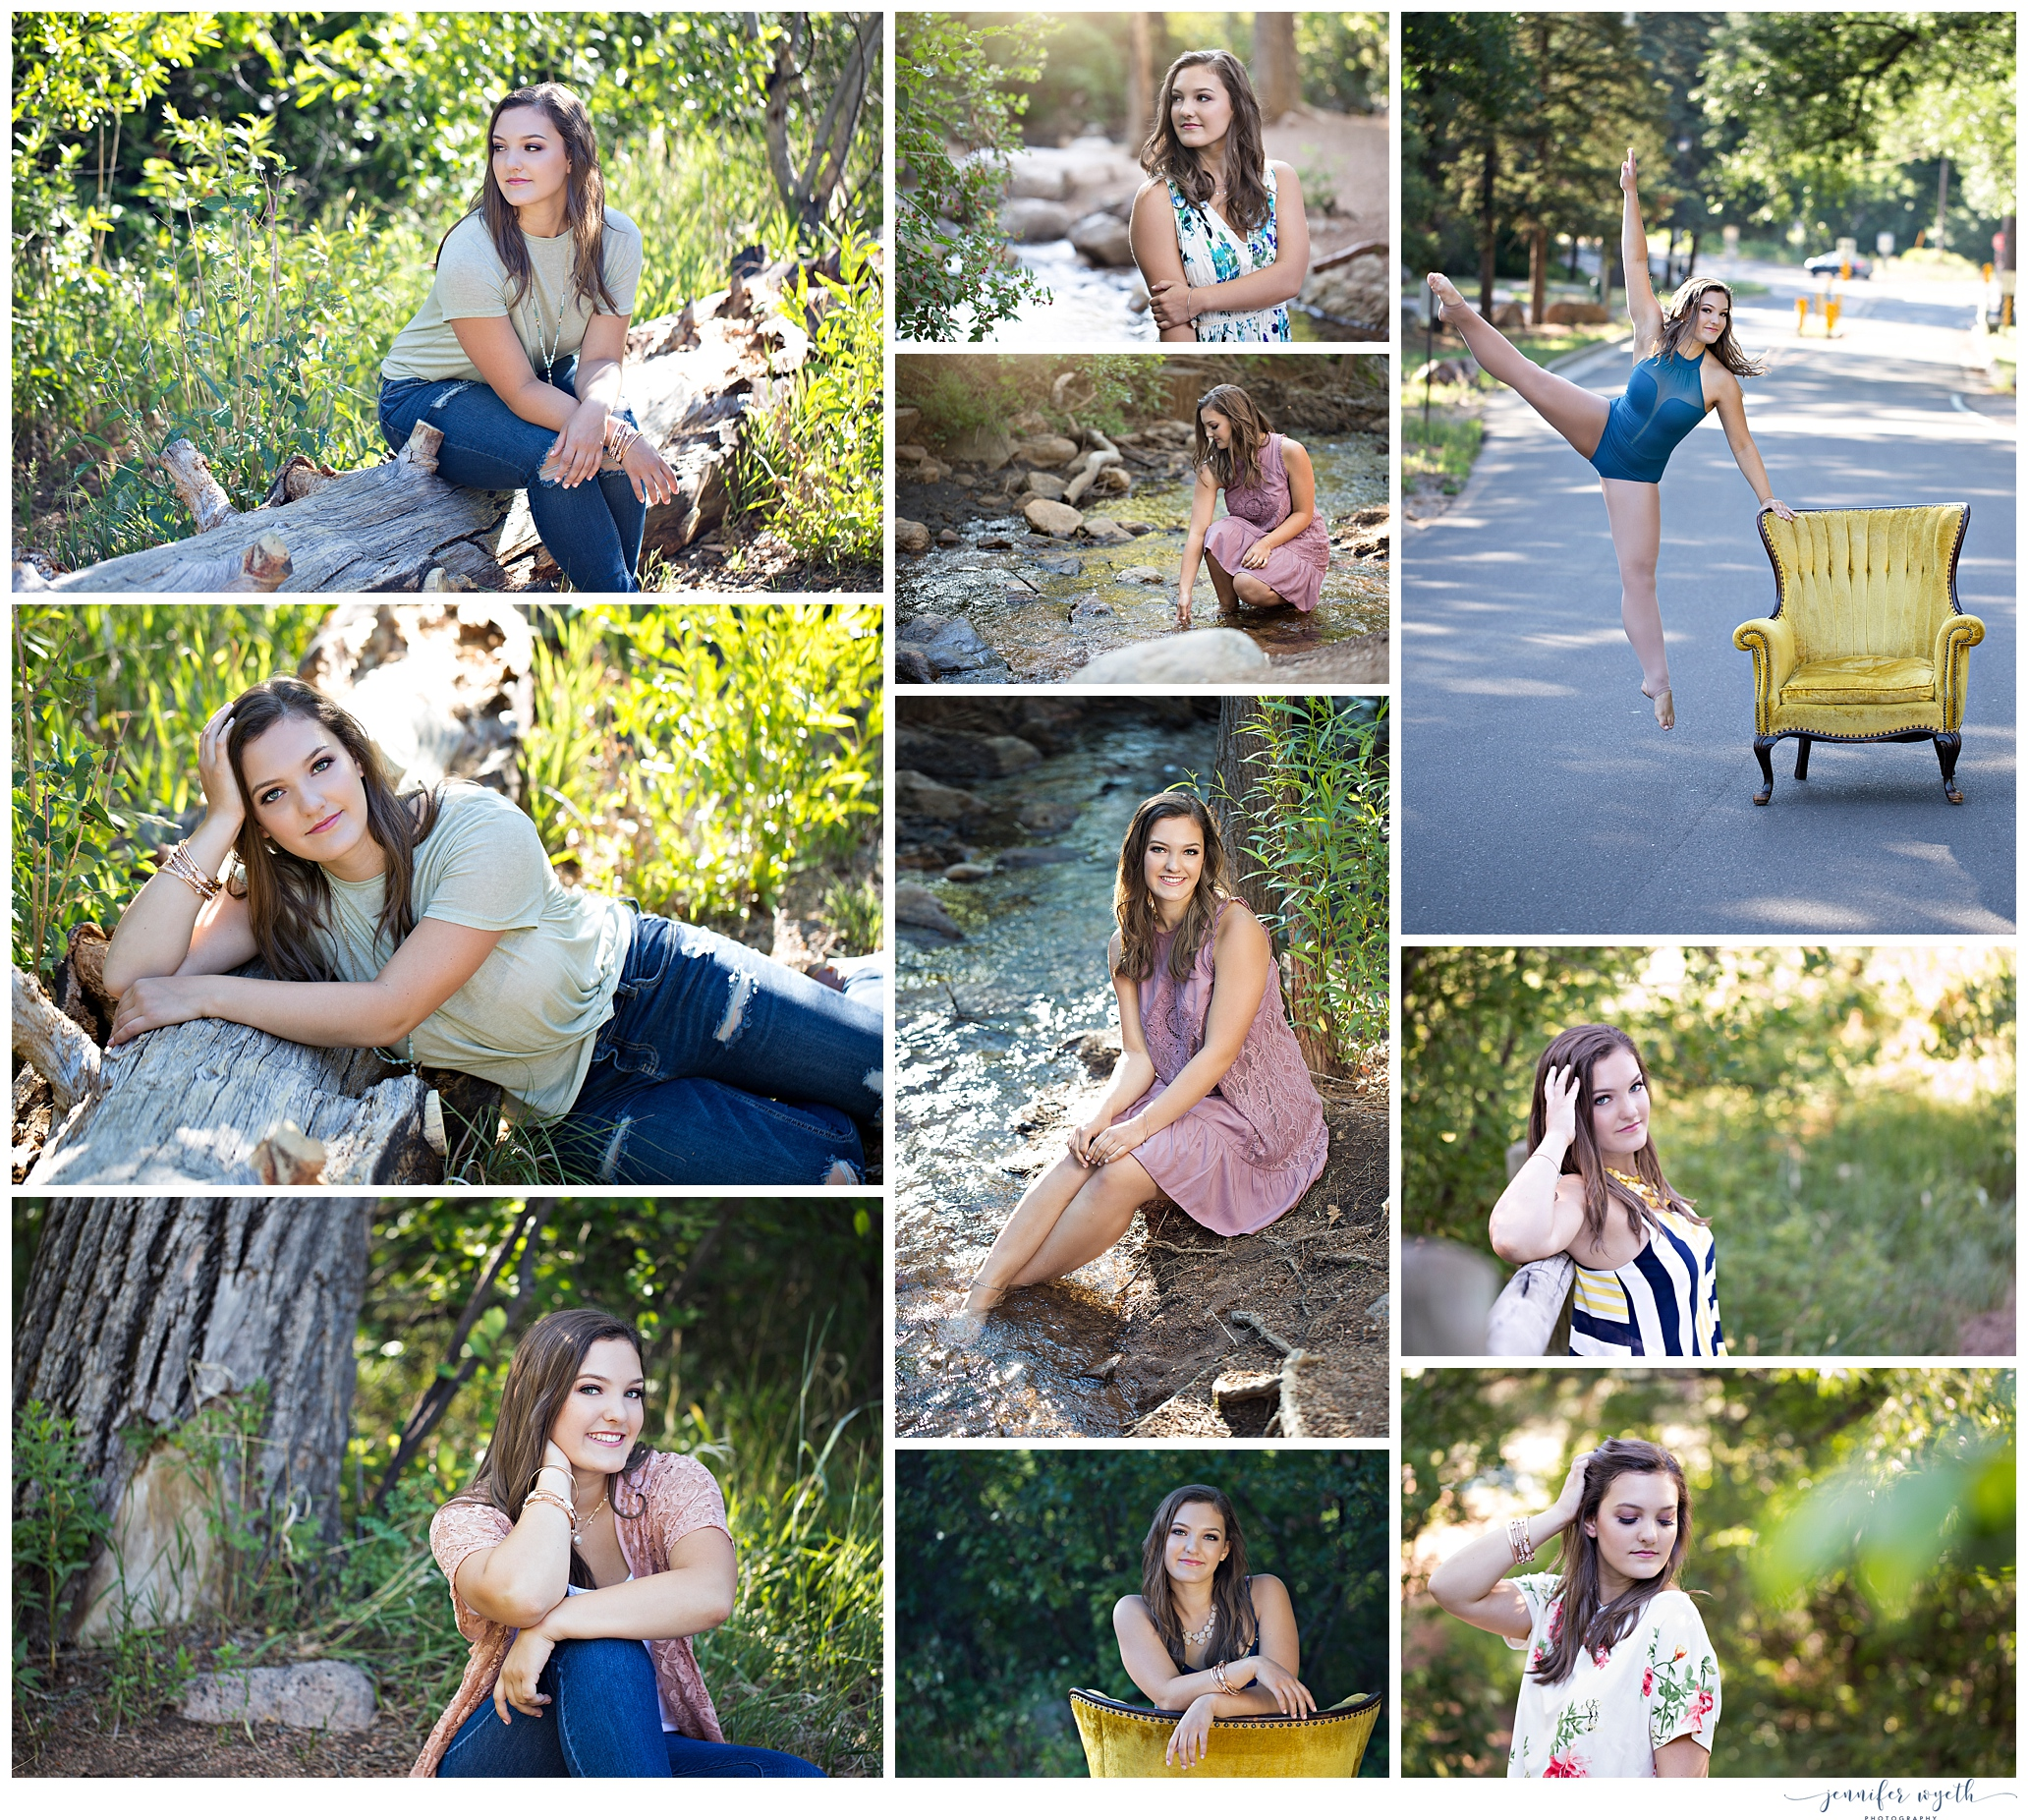 Jennifer-Wyeth-photography-senior-pictures-colorado-springs-photographer_0265.jpg